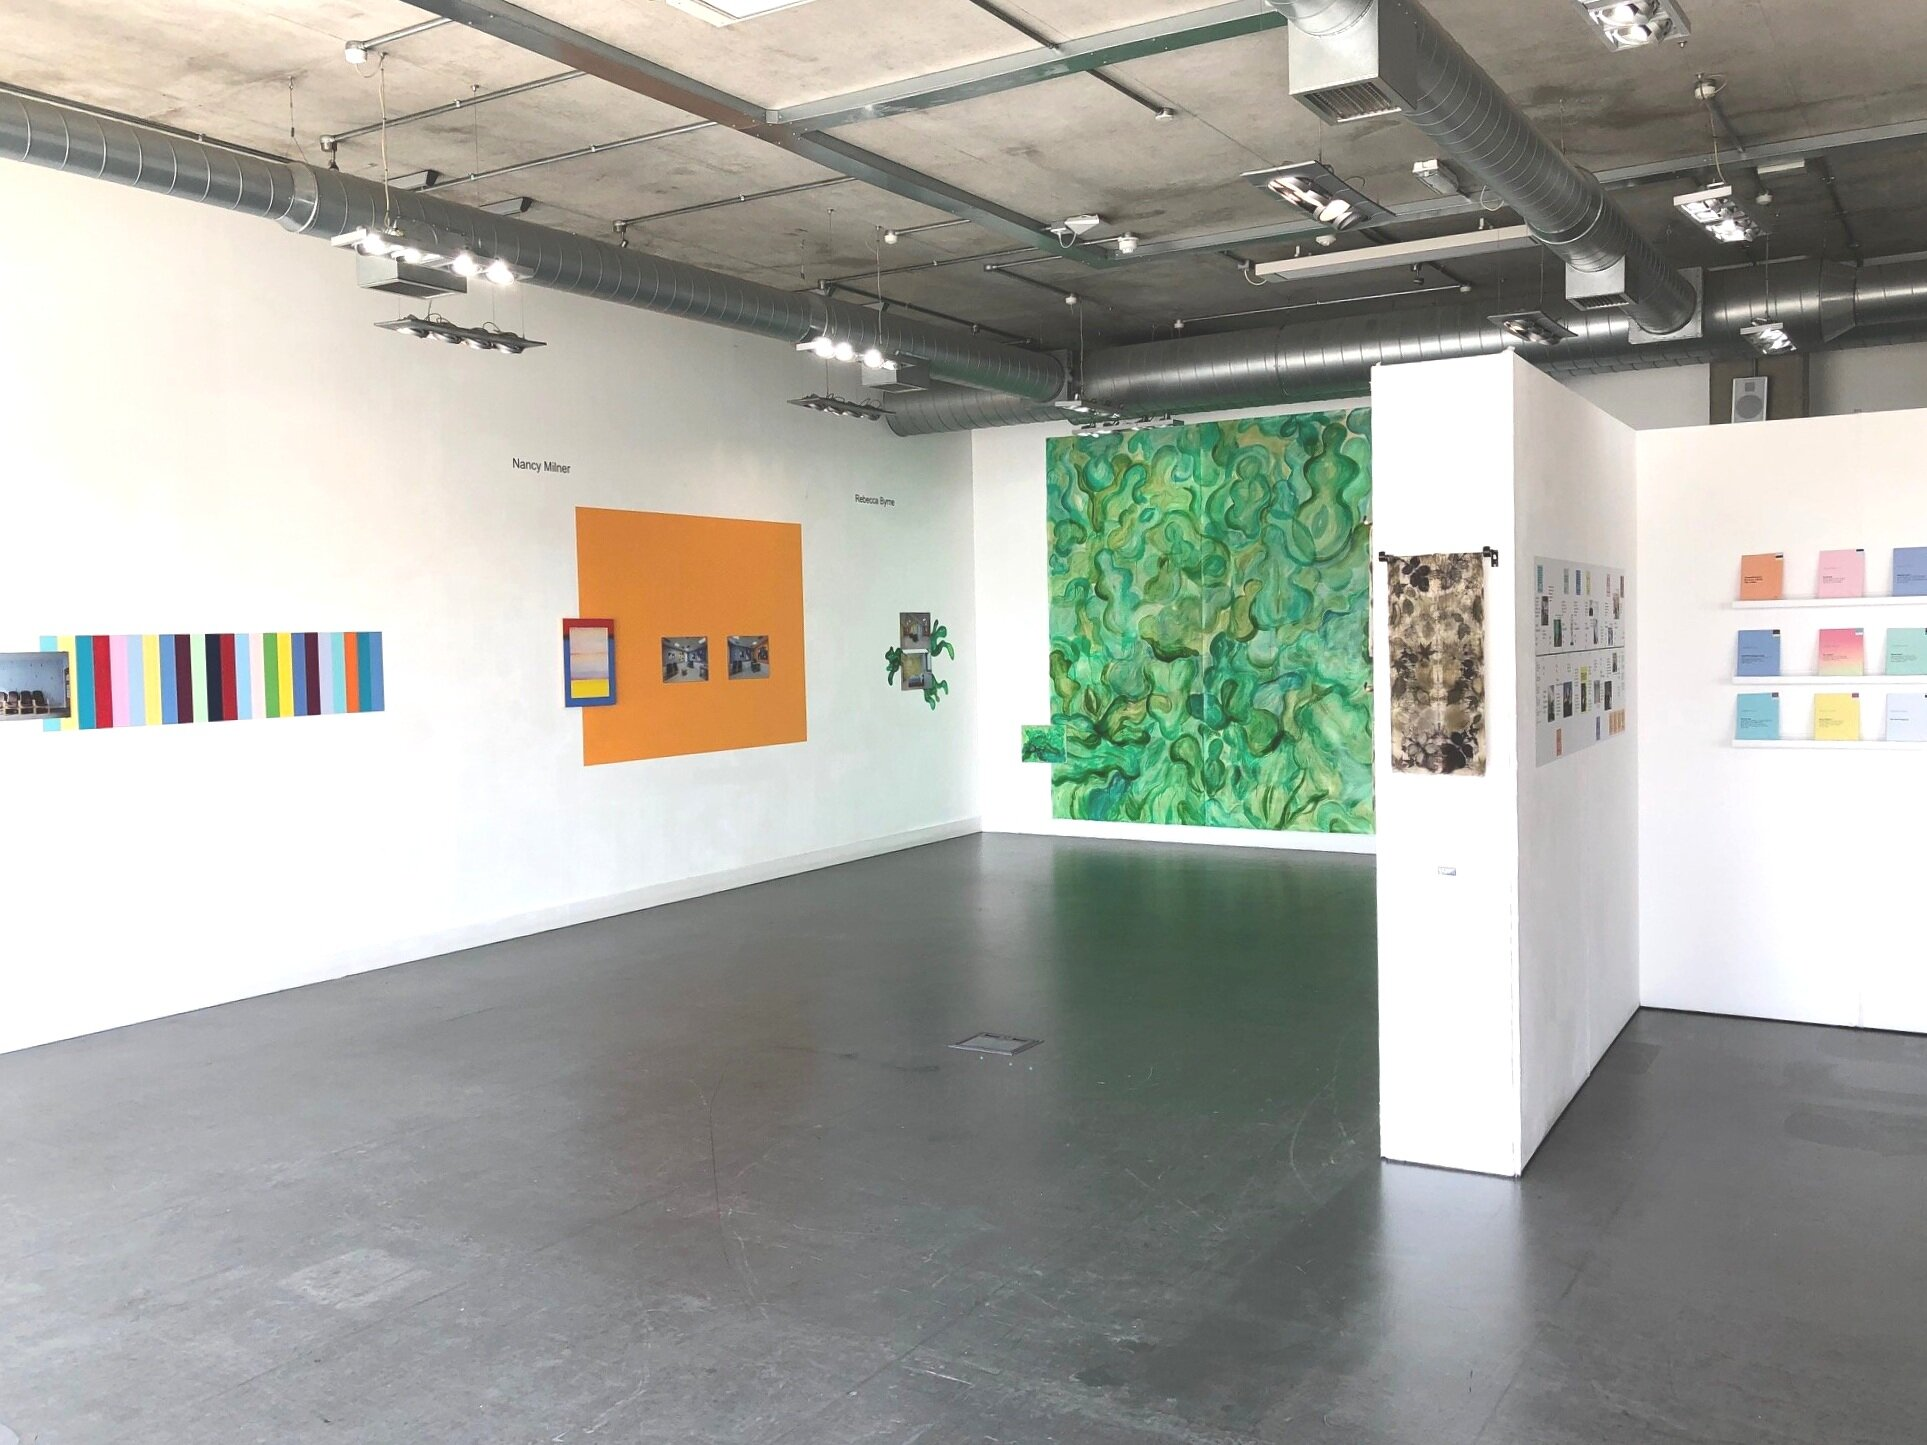 Woodlands Exhibition - Waterfront Gallery, University of Suffolk, Neptune Quay, IP41QJ29 June - 24 July 2019Opening: Friday 28 June 6-8pmWe will be showcasing our project with Norfolk and Suffolk NHS Foundation Trust to bring world class artwork to Woodlands, the mental health service at Ipswich Hospital. The artists involved in this project include Rebecca Byrne, Nick Knight, Nancy Milner, Tal Rosner, Carl Rowe, Tim A Shaw.We invited students from University of Suffolk and Norwich University of The Arts to respond to a hypothetical Hospital Rooms brief. We will presenting their work at the Waterfront Gallery. Students included in the show are: Toby Granger, Fred Lankester, Gary Snelling, Filip Gabrhelik, Emily Gillbanks, Anna Ward, Muneera Yate and Grace Farman.